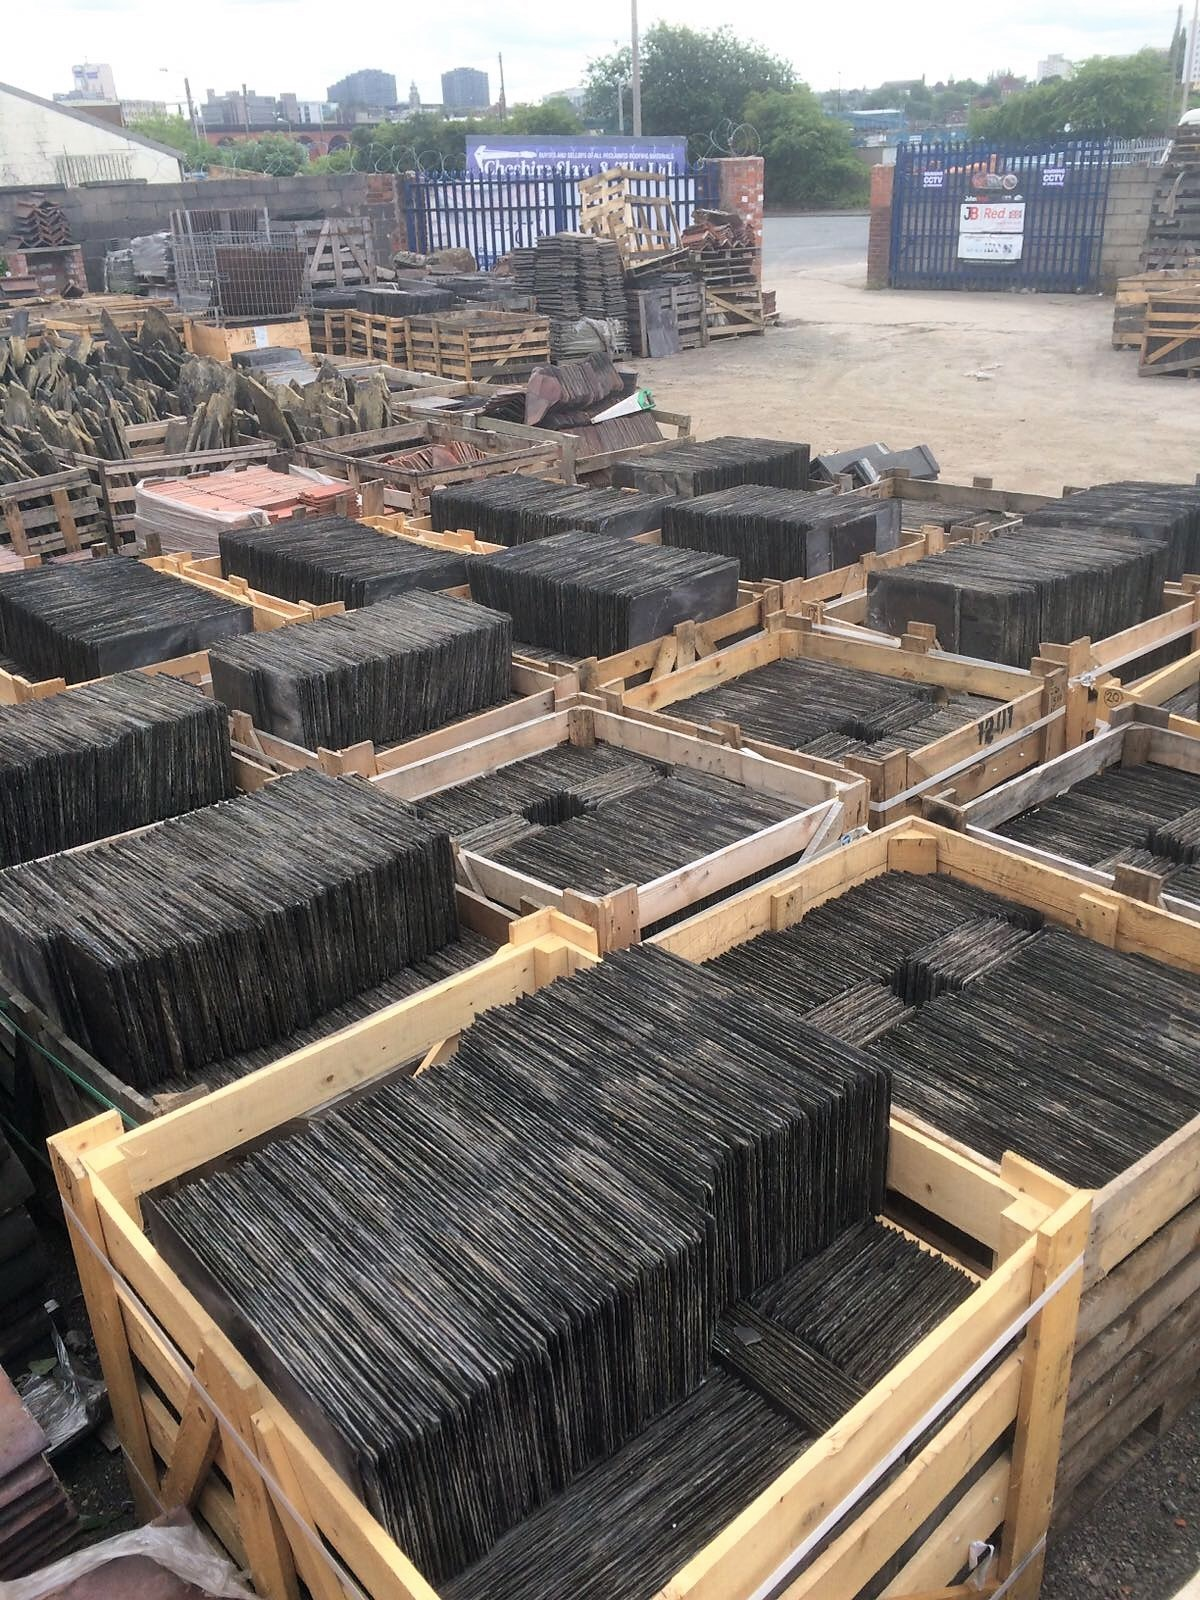 Our Yard Cheshire Slate Amp Tile Ltd Specialists In